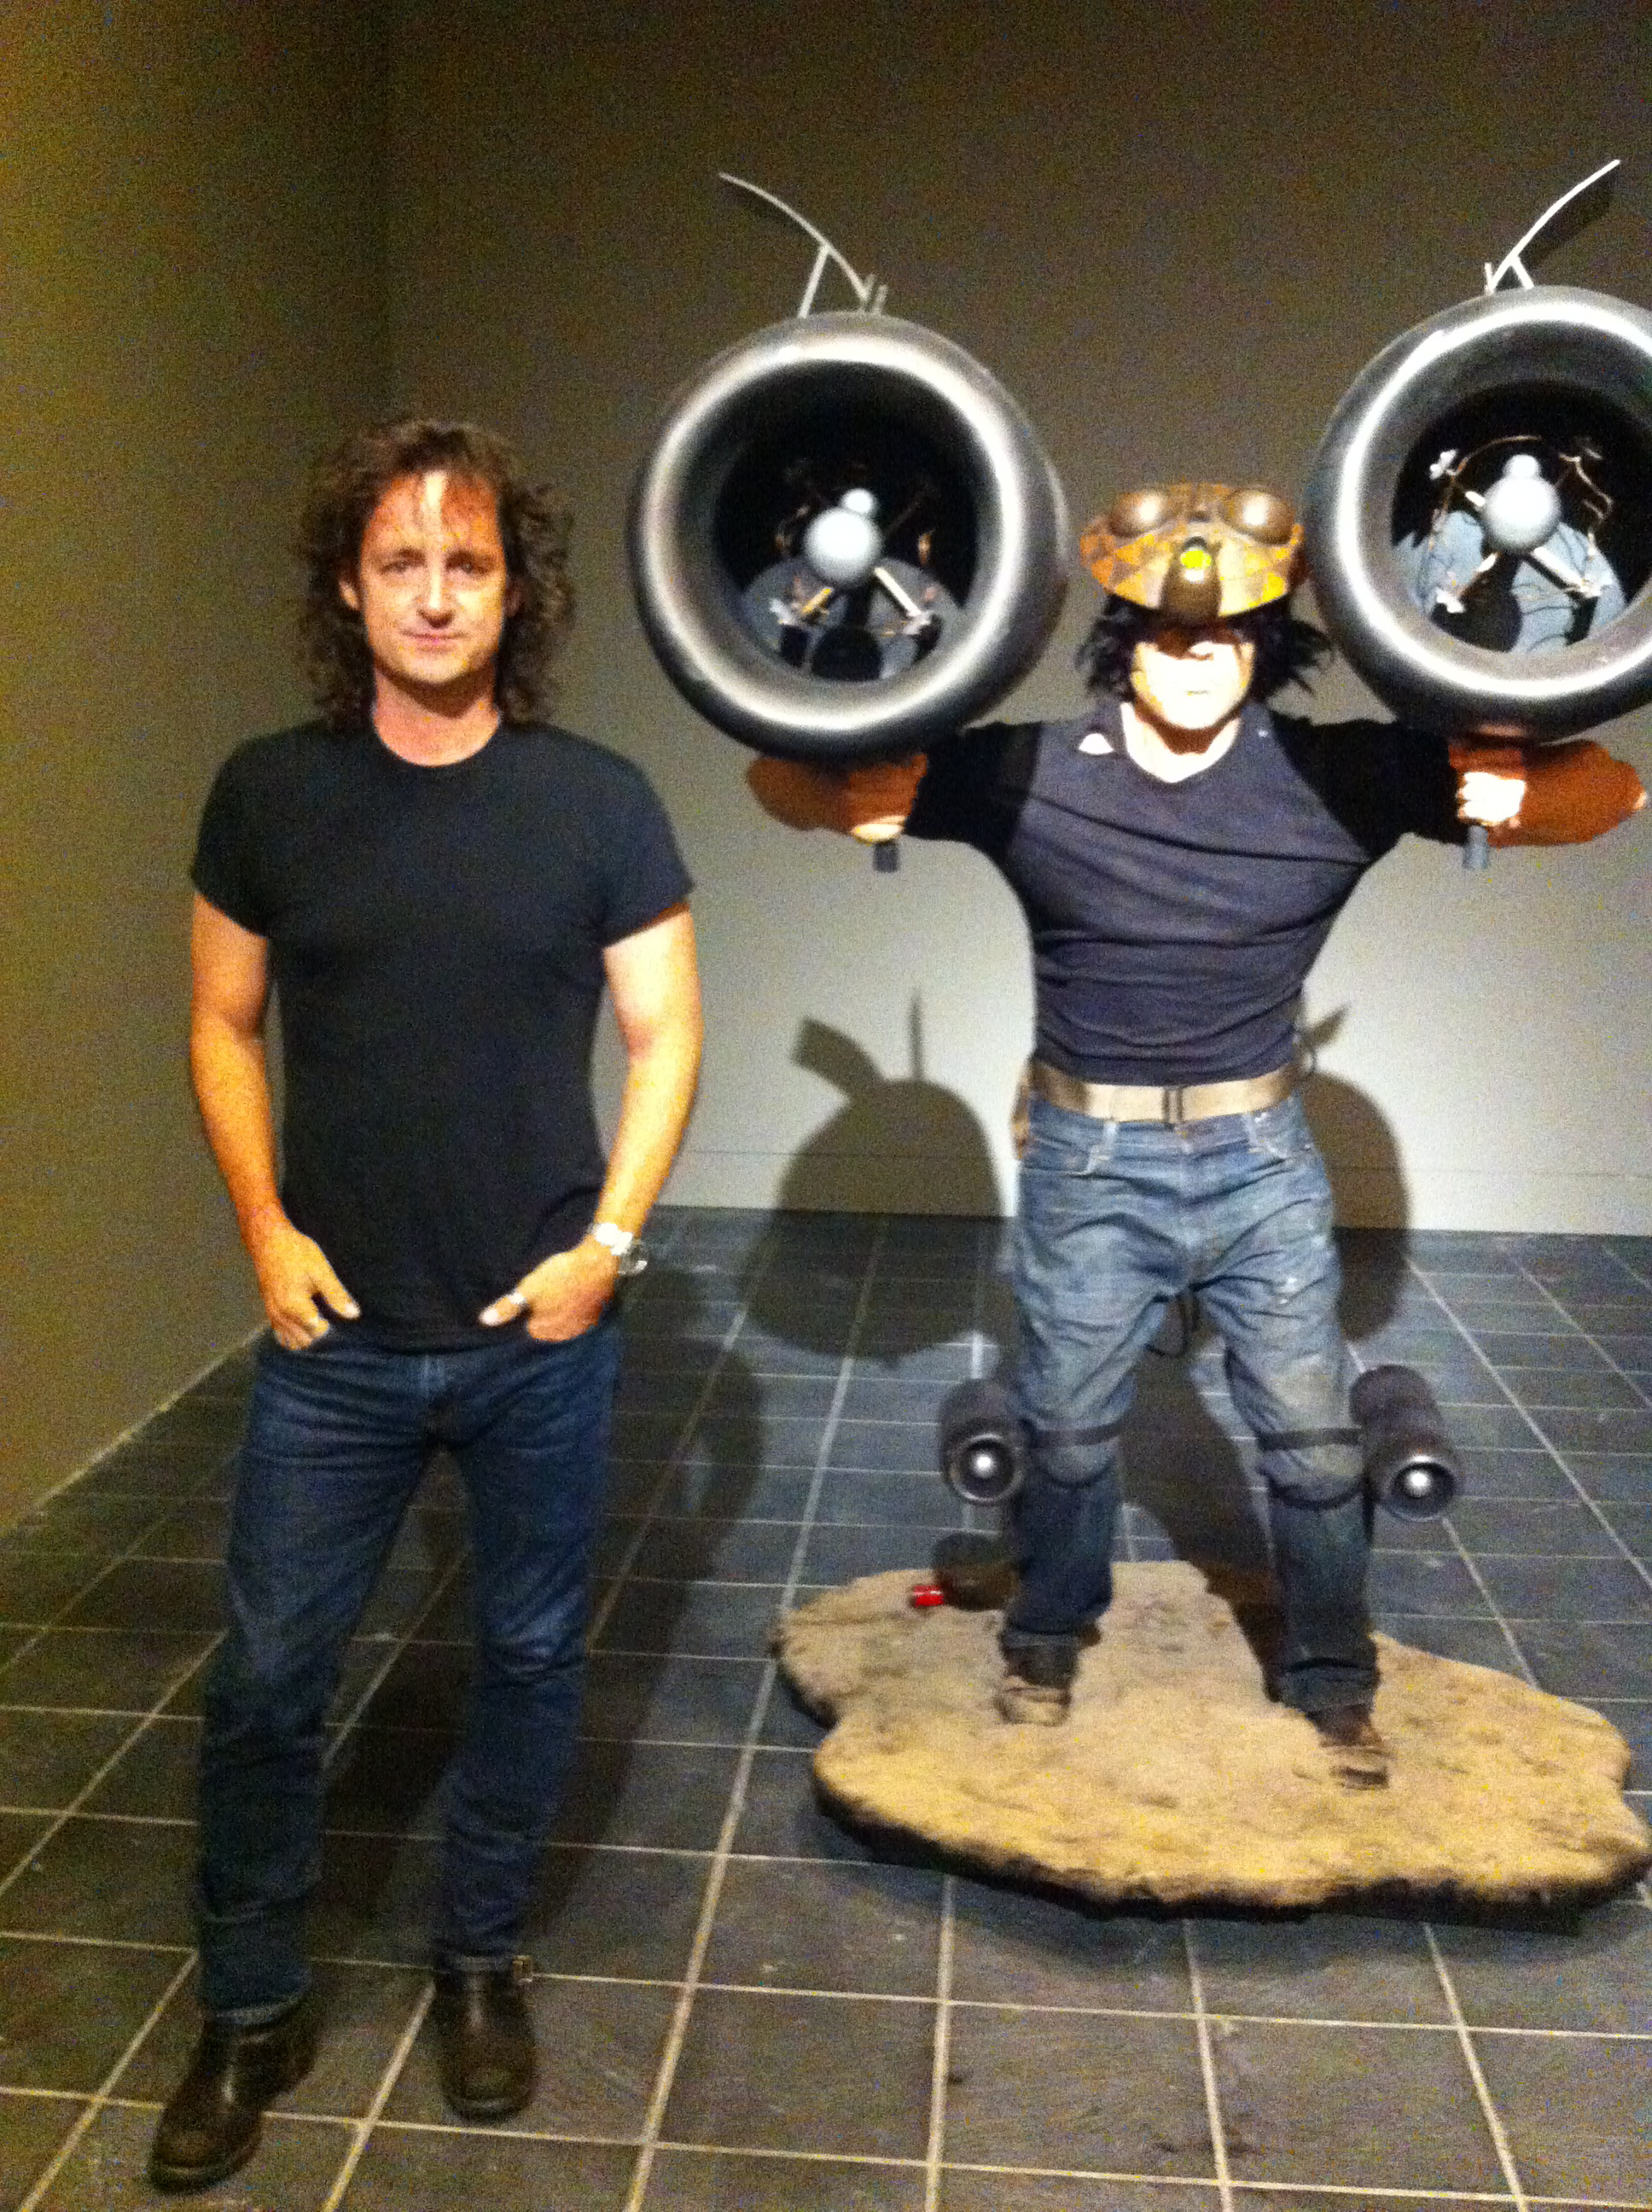 Jeff Smith Books Blog: File:Jeff Smith With Life-size RASL Figure At The Opening